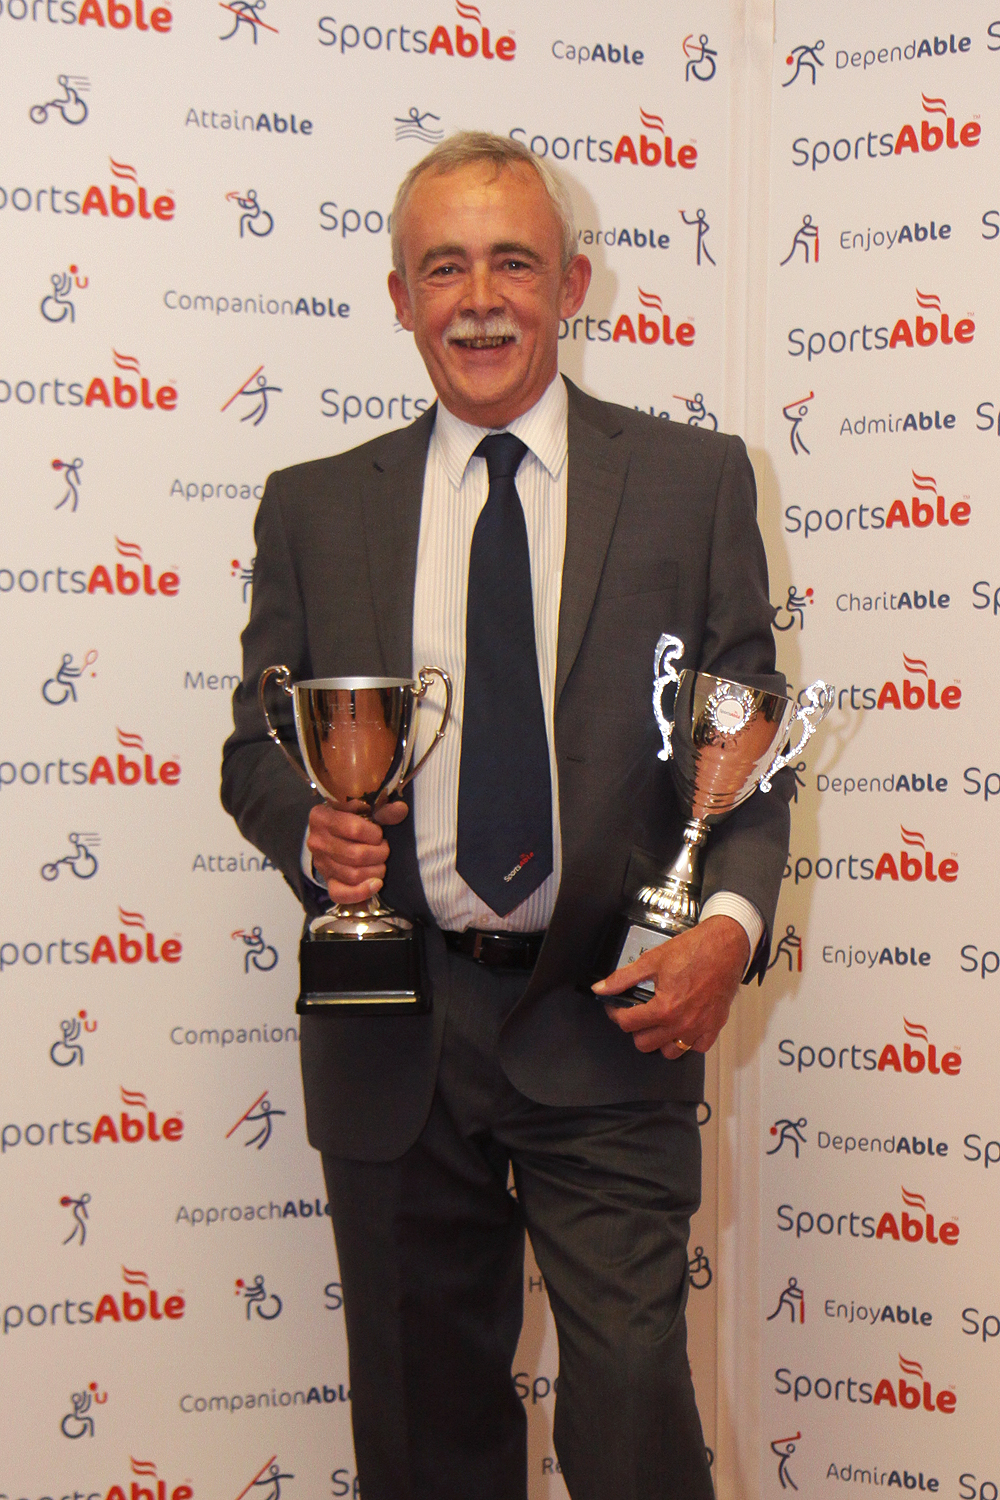 Mr Gibbs with the president's cup he won at the 2016 SportsAble award evening